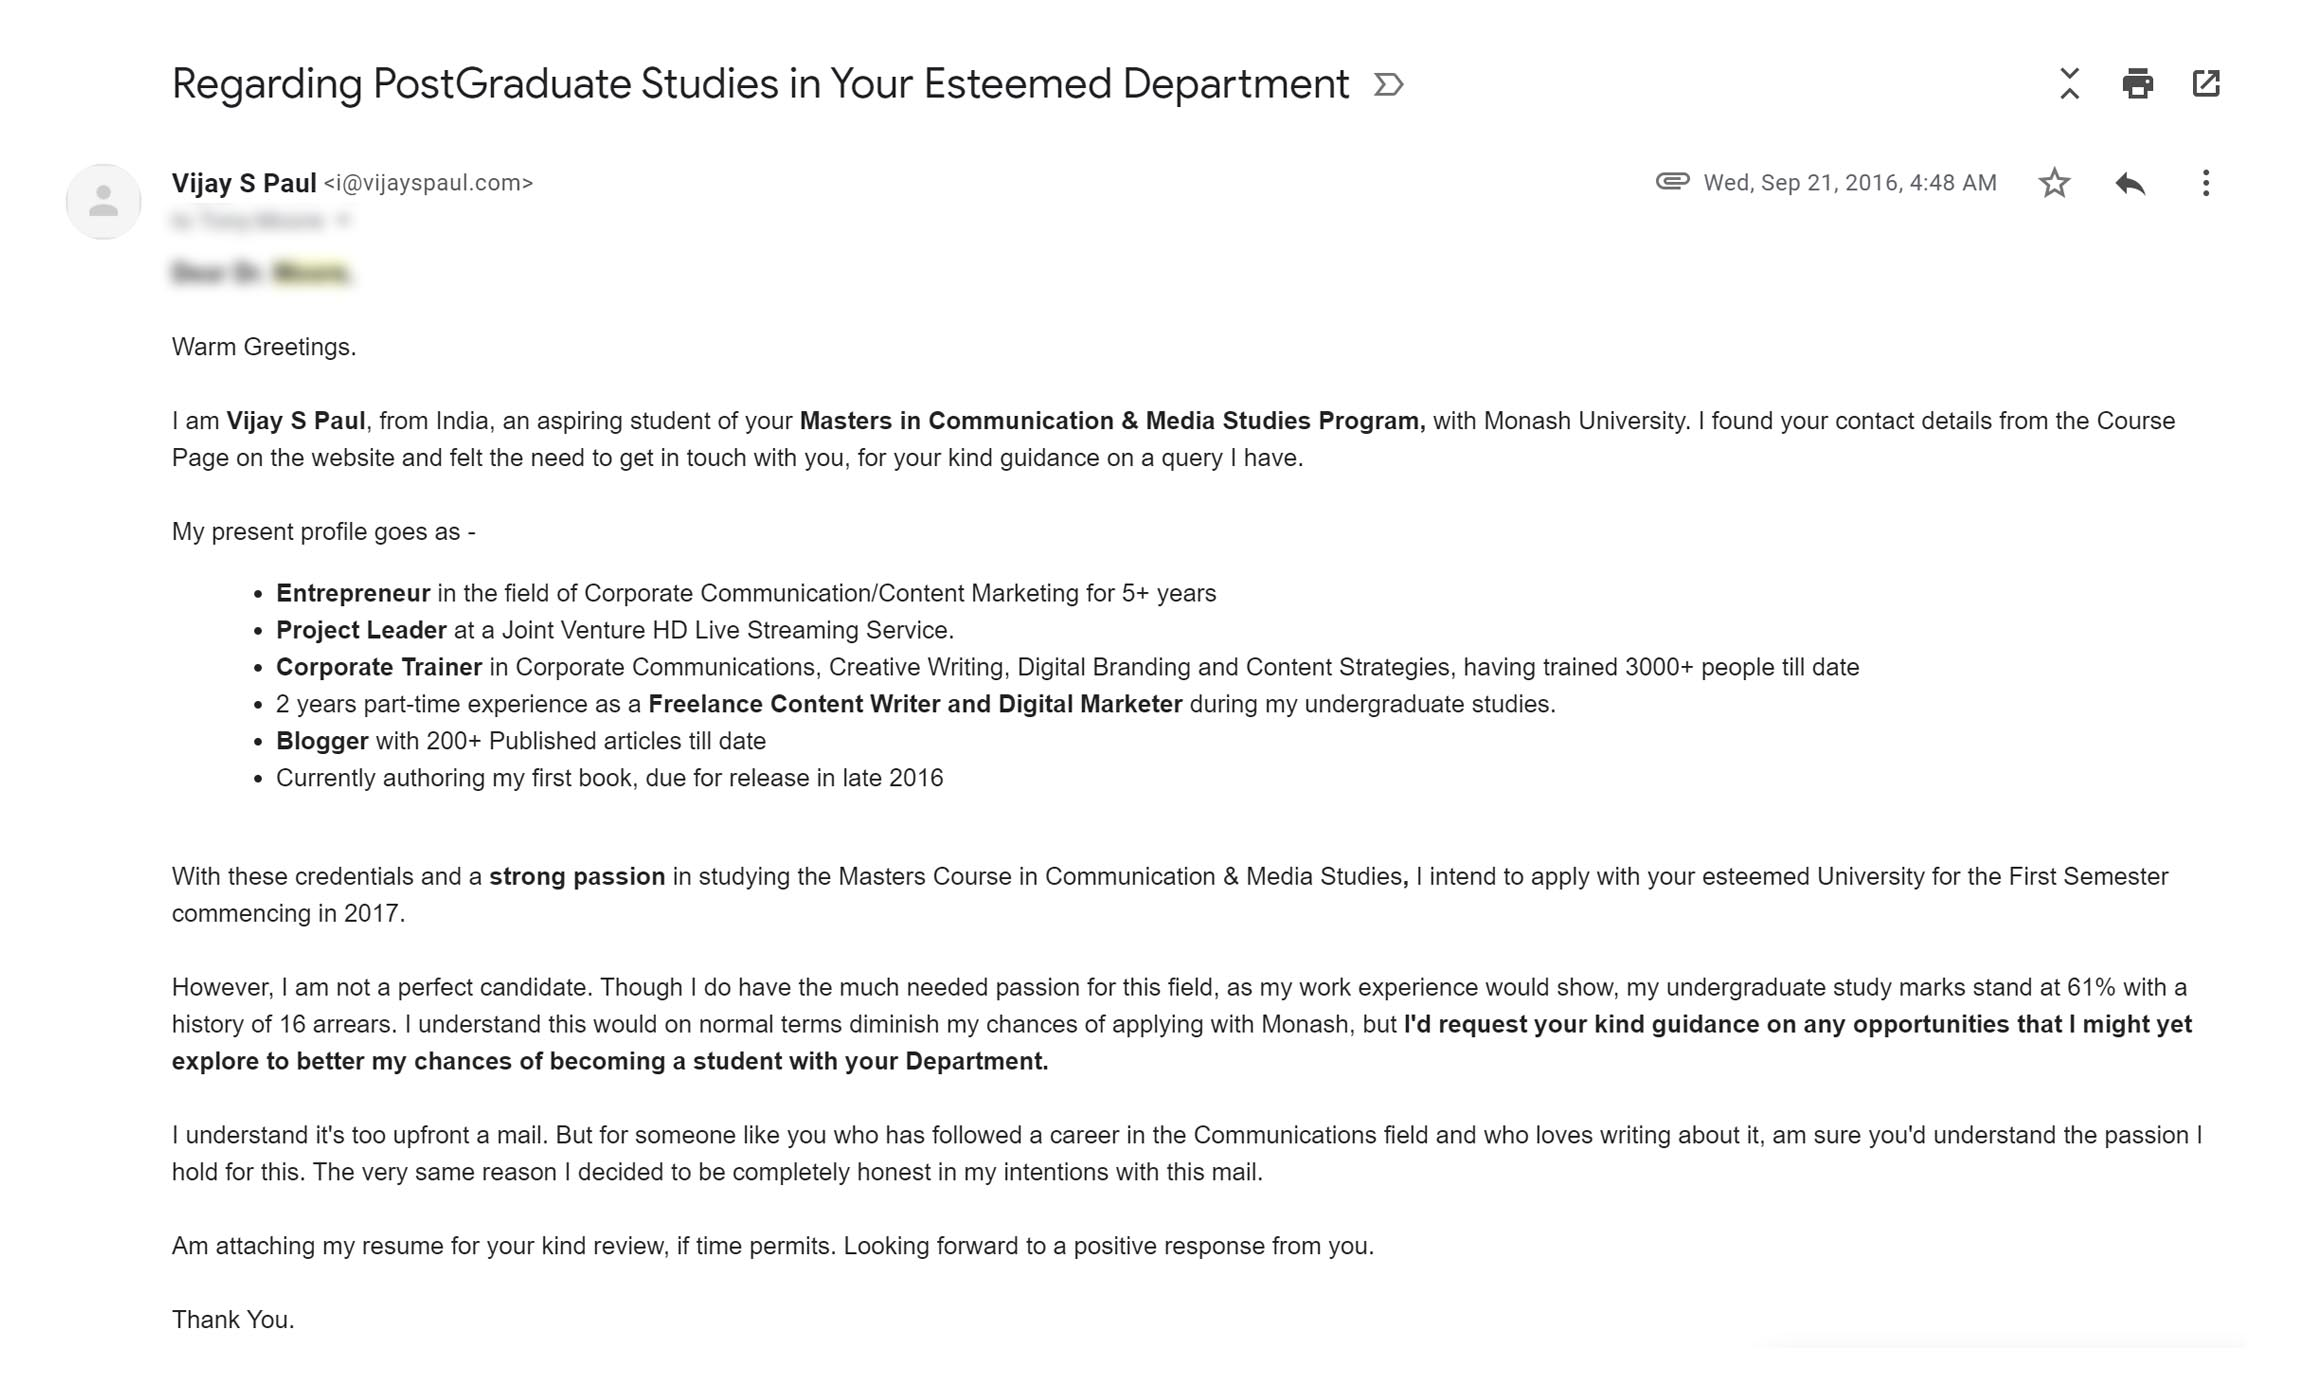 cold email example that got me admission for my postgraduate studies